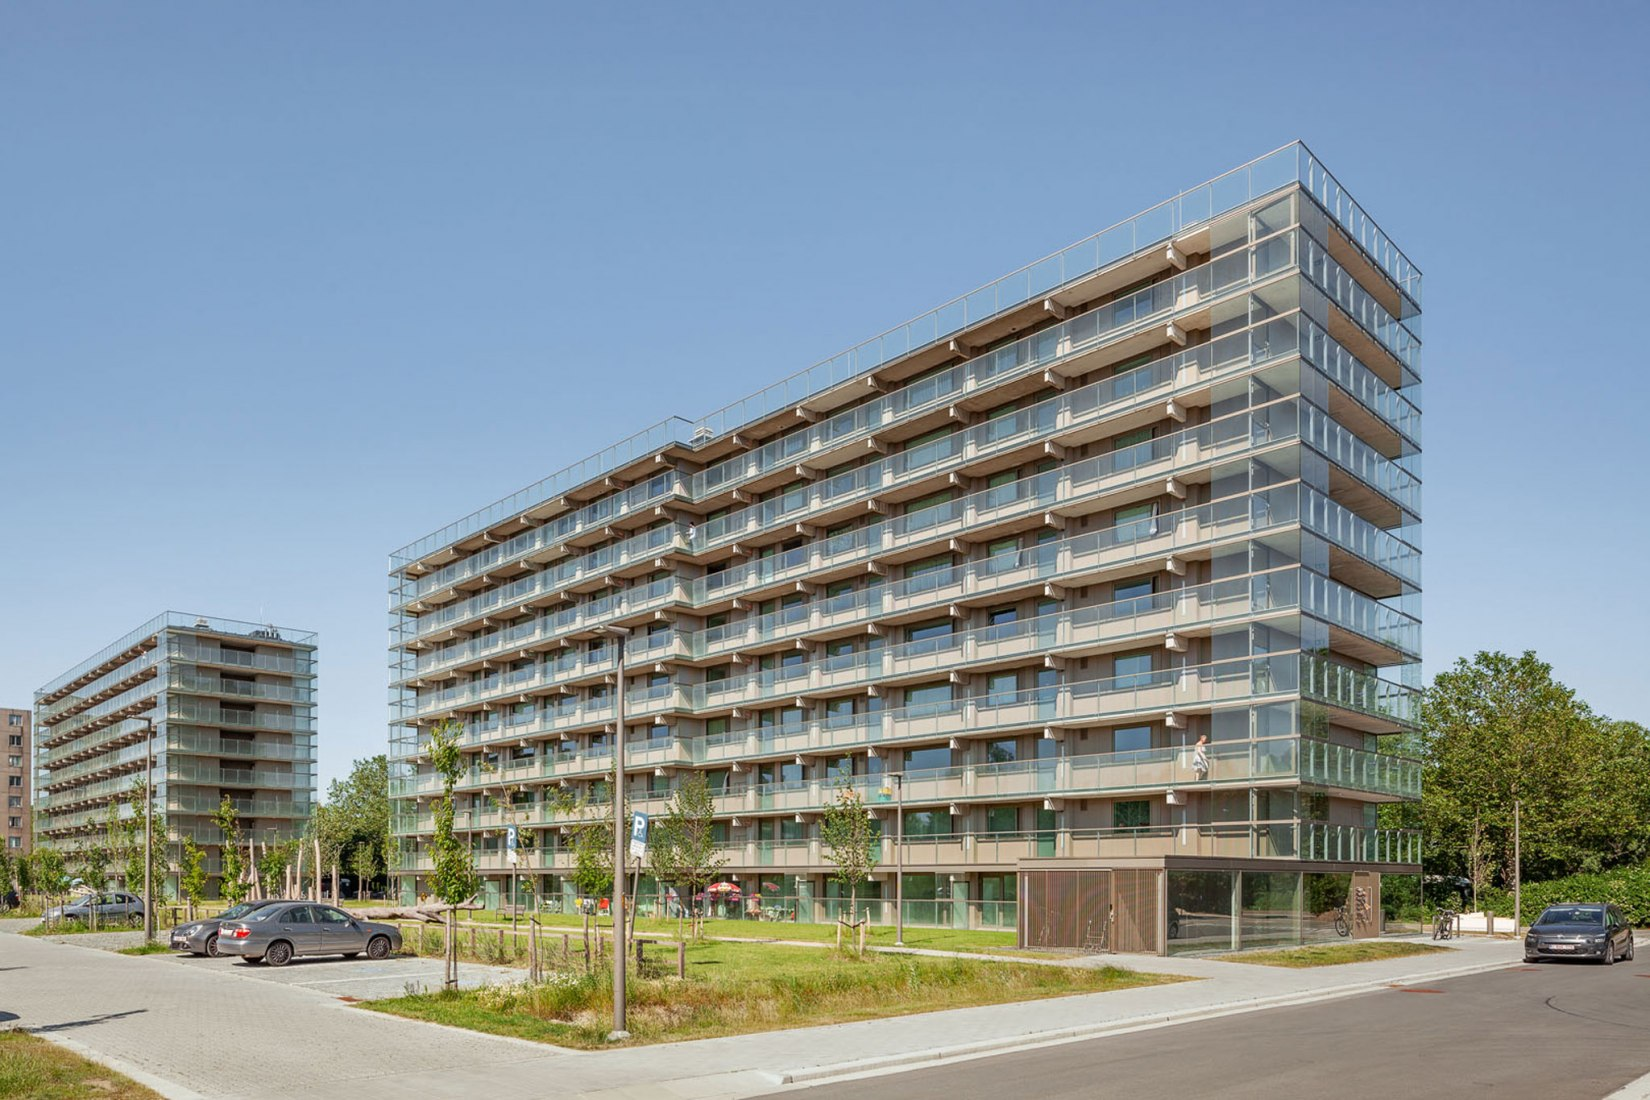 Transformation of the Rozemaai Housing by Atelier Kempe Thill. Photograph by Ulrich Schwarz.